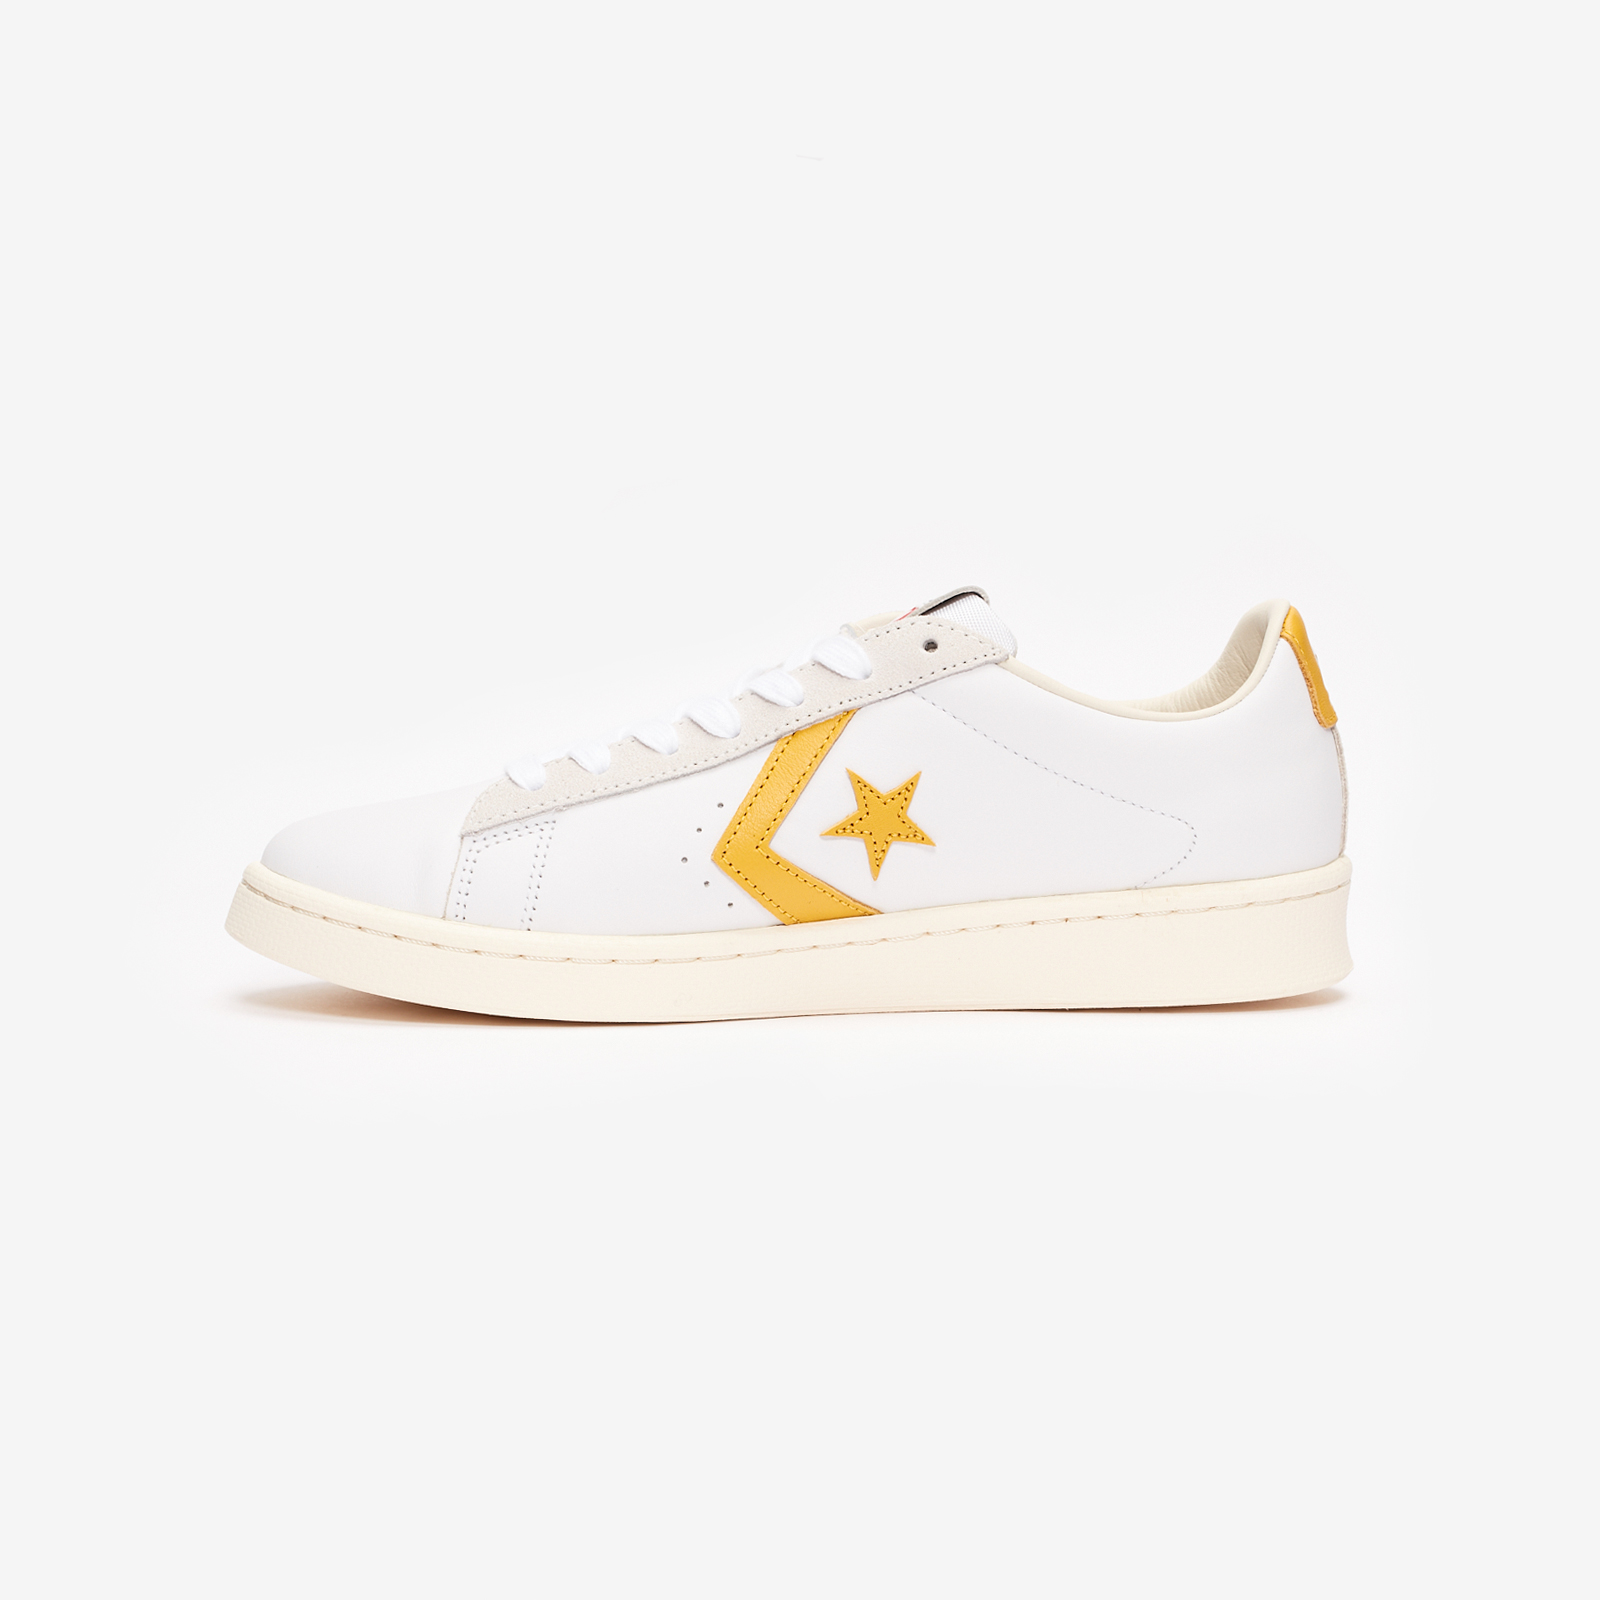 Converse Pro Leather Low OG - 171070c - SNS   sneakers ...